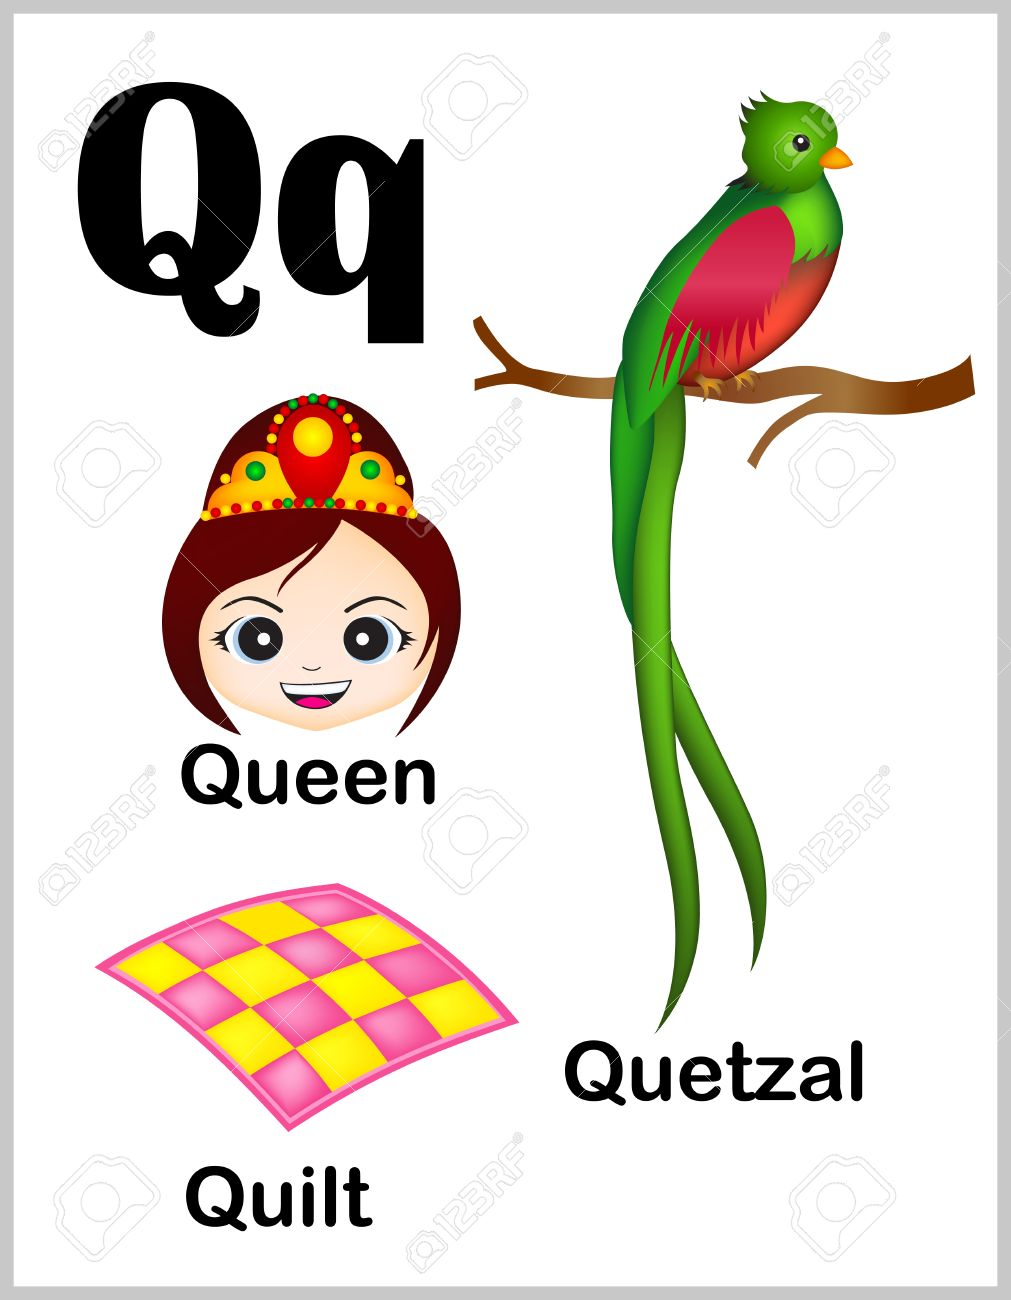 photo about Letter Q Printable titled Lovable and vibrant alphabet letter Q with preset of examples..